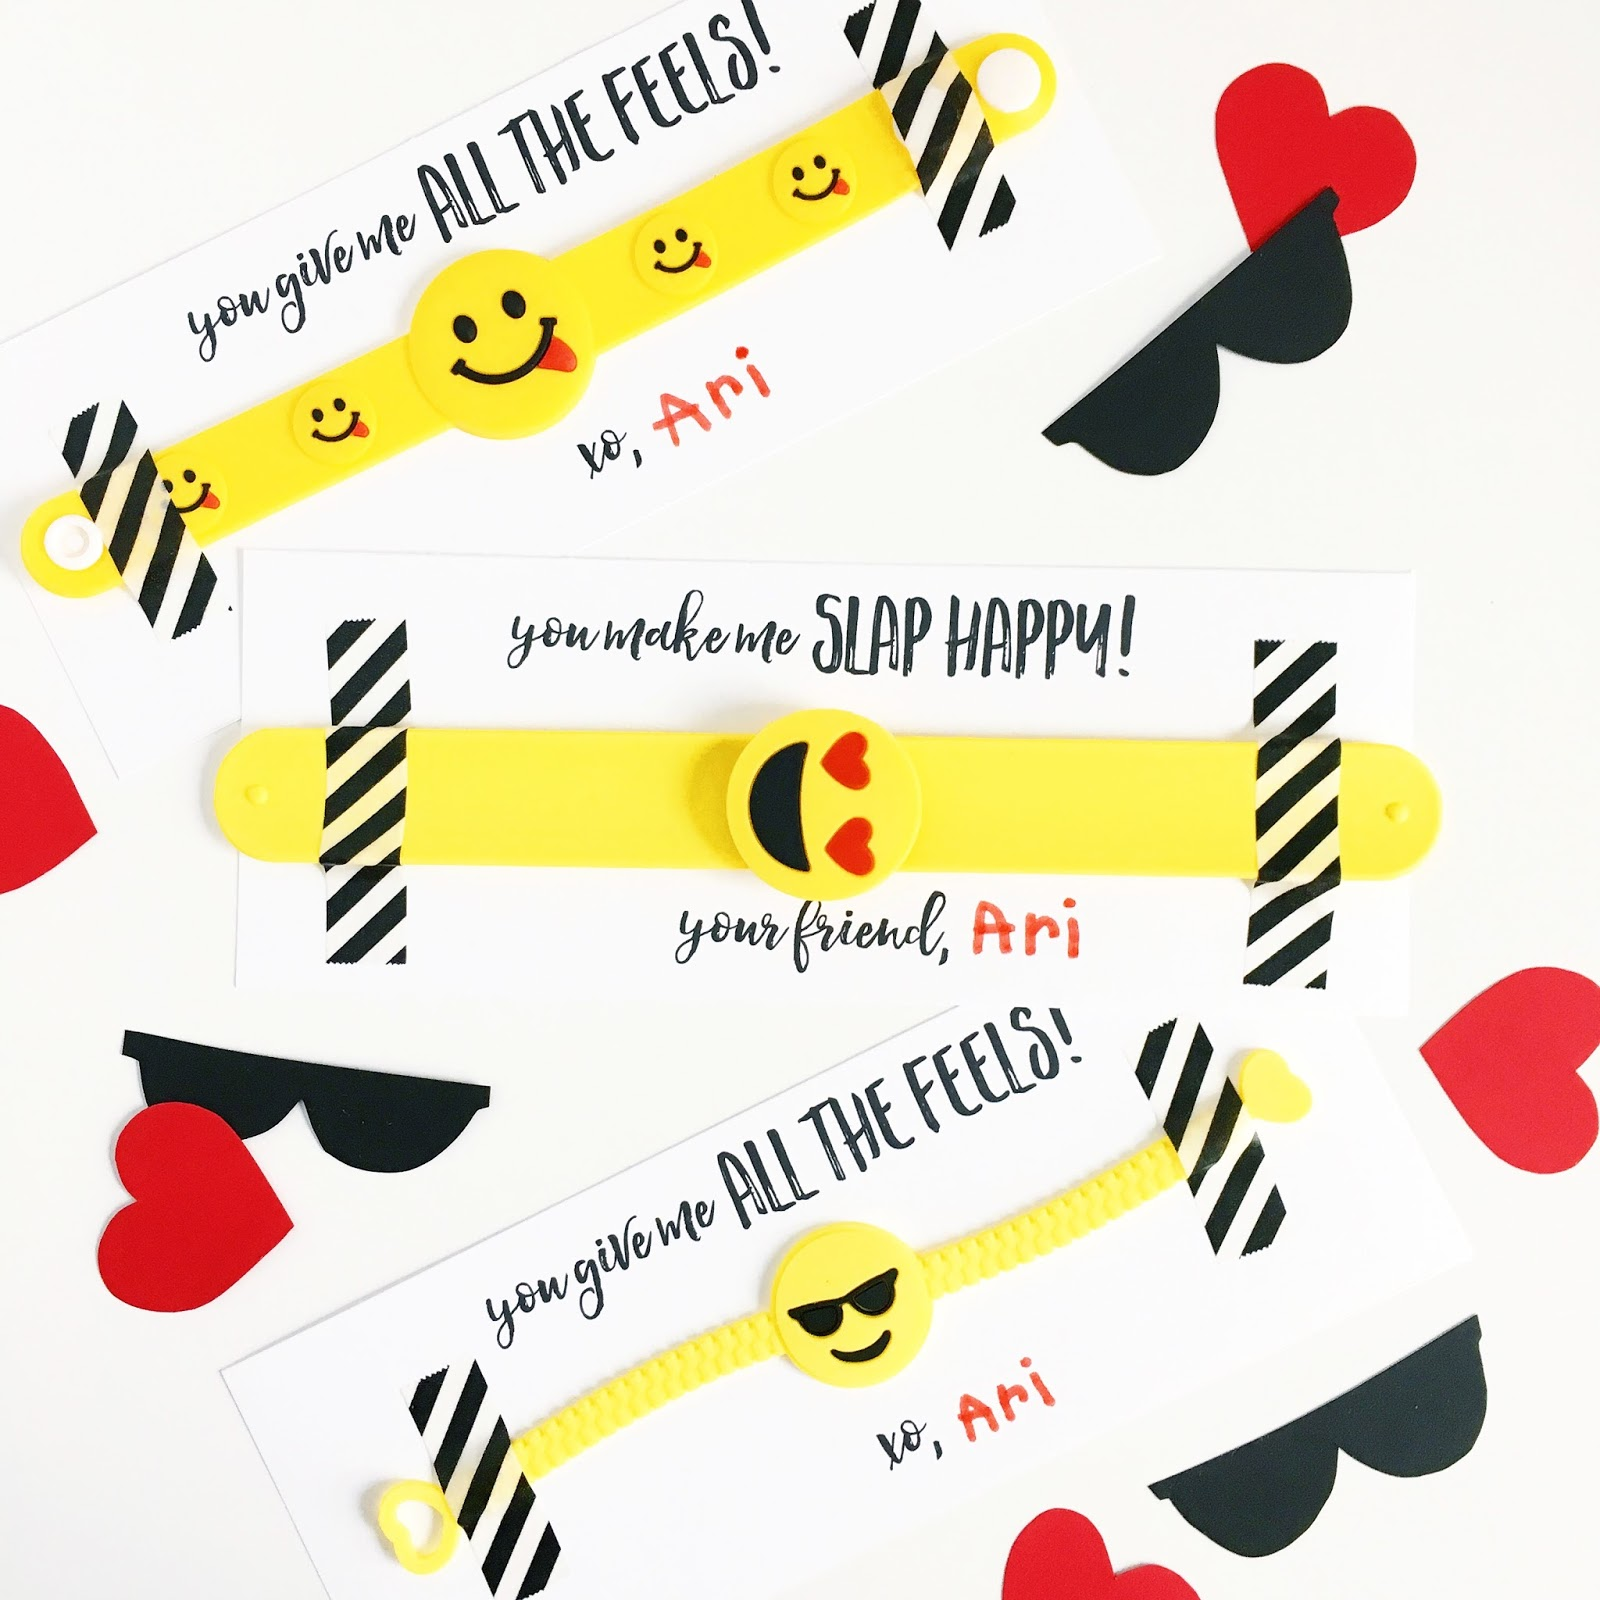 photo about Free Printable Emojis titled VALENTINE EMOJI BRACELETS Free of charge PRINTABLE